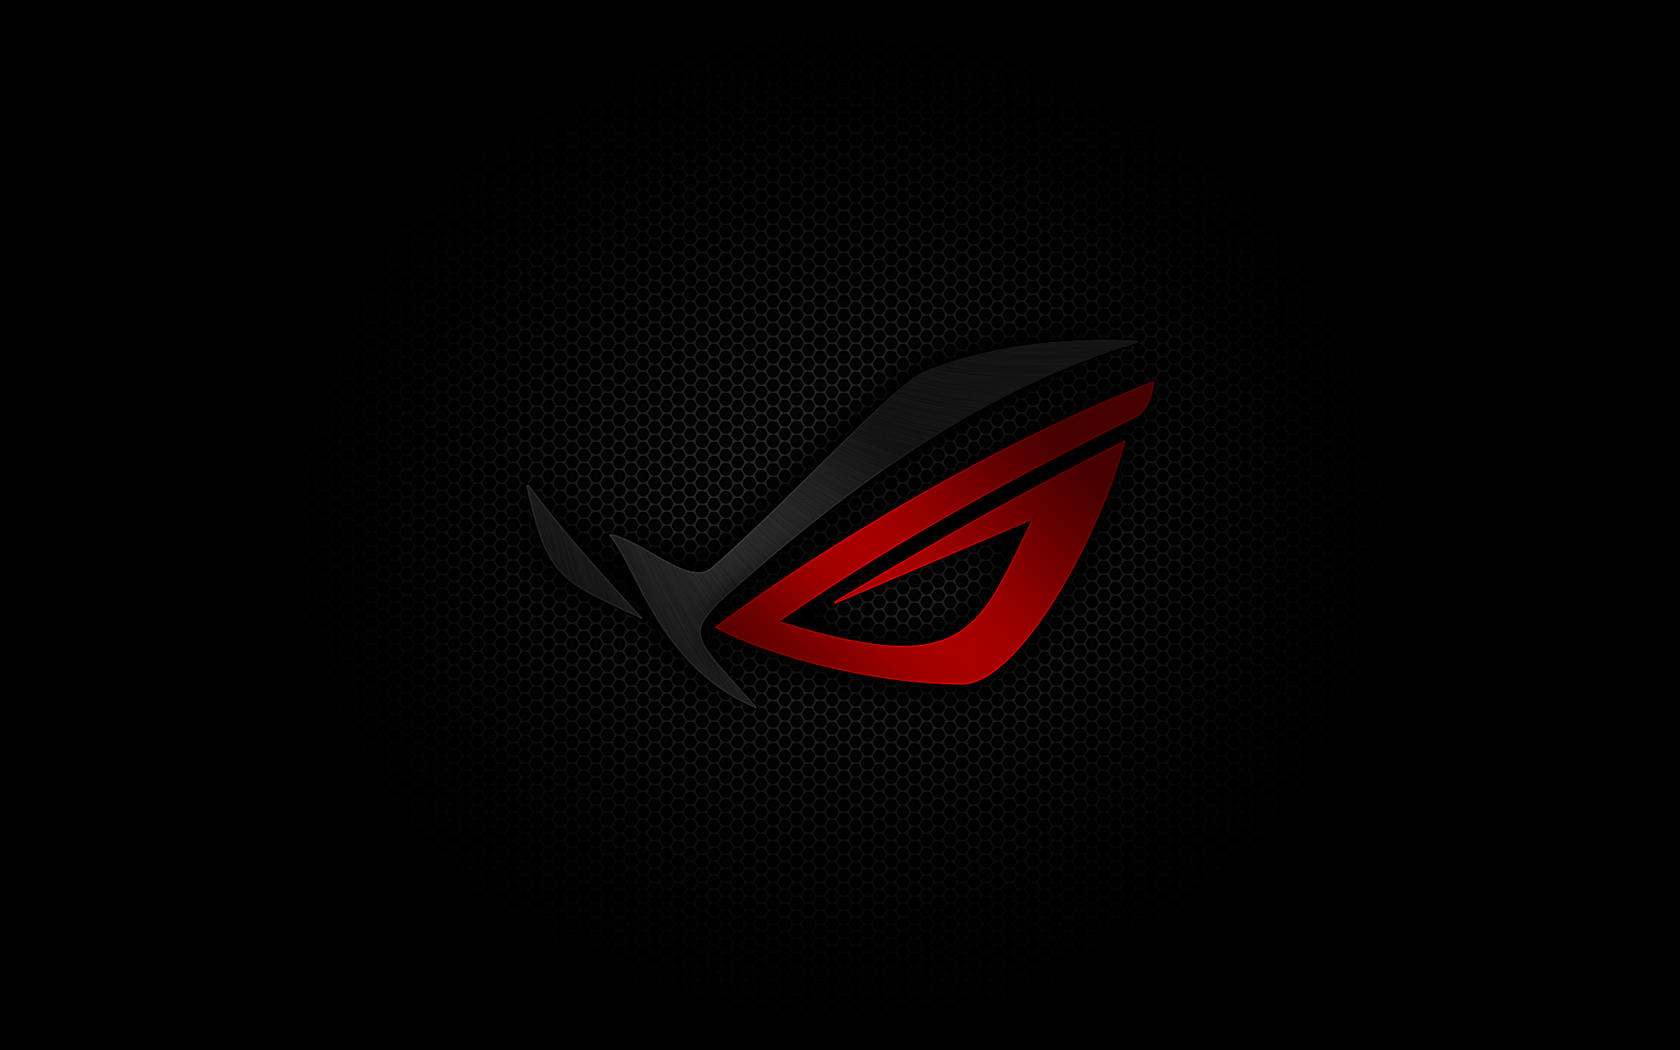 Asus rog wallpaper pack by blackout1911 on deviantart asus rog wallpaper pack by blackout1911 asus rog wallpaper pack by blackout1911 stopboris Images